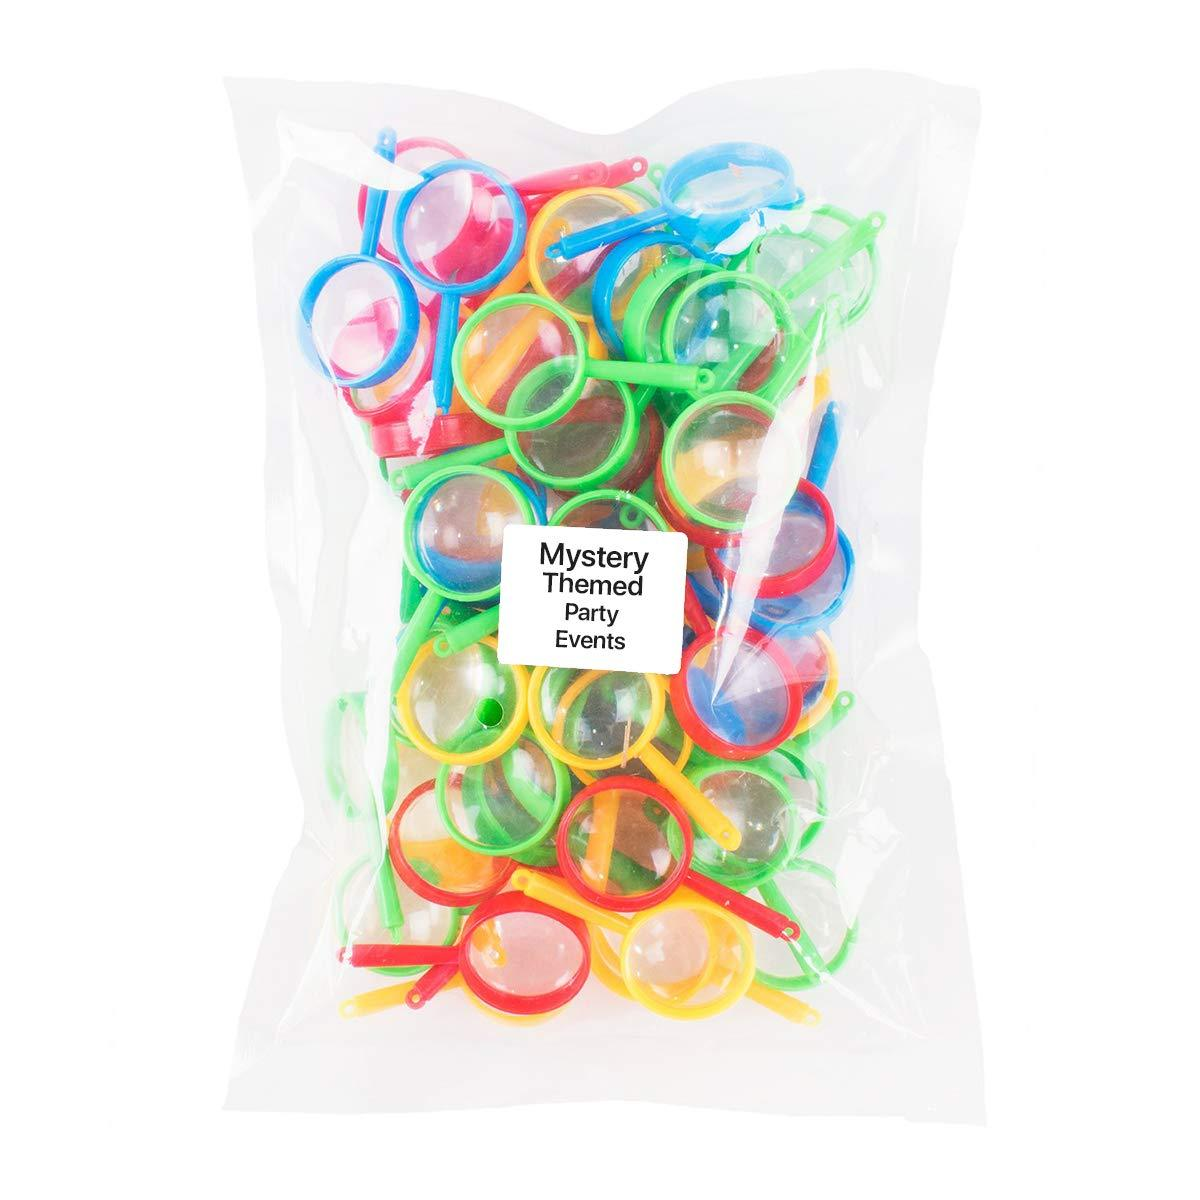 144 Pack of Plastic Enlarging Glasses Party Prizes KCO Brands Party Favors or Loot Bags Fillers Finding Easter Eggs Gadget Gift Ideas Children Educational Toy Magnifying Glasses